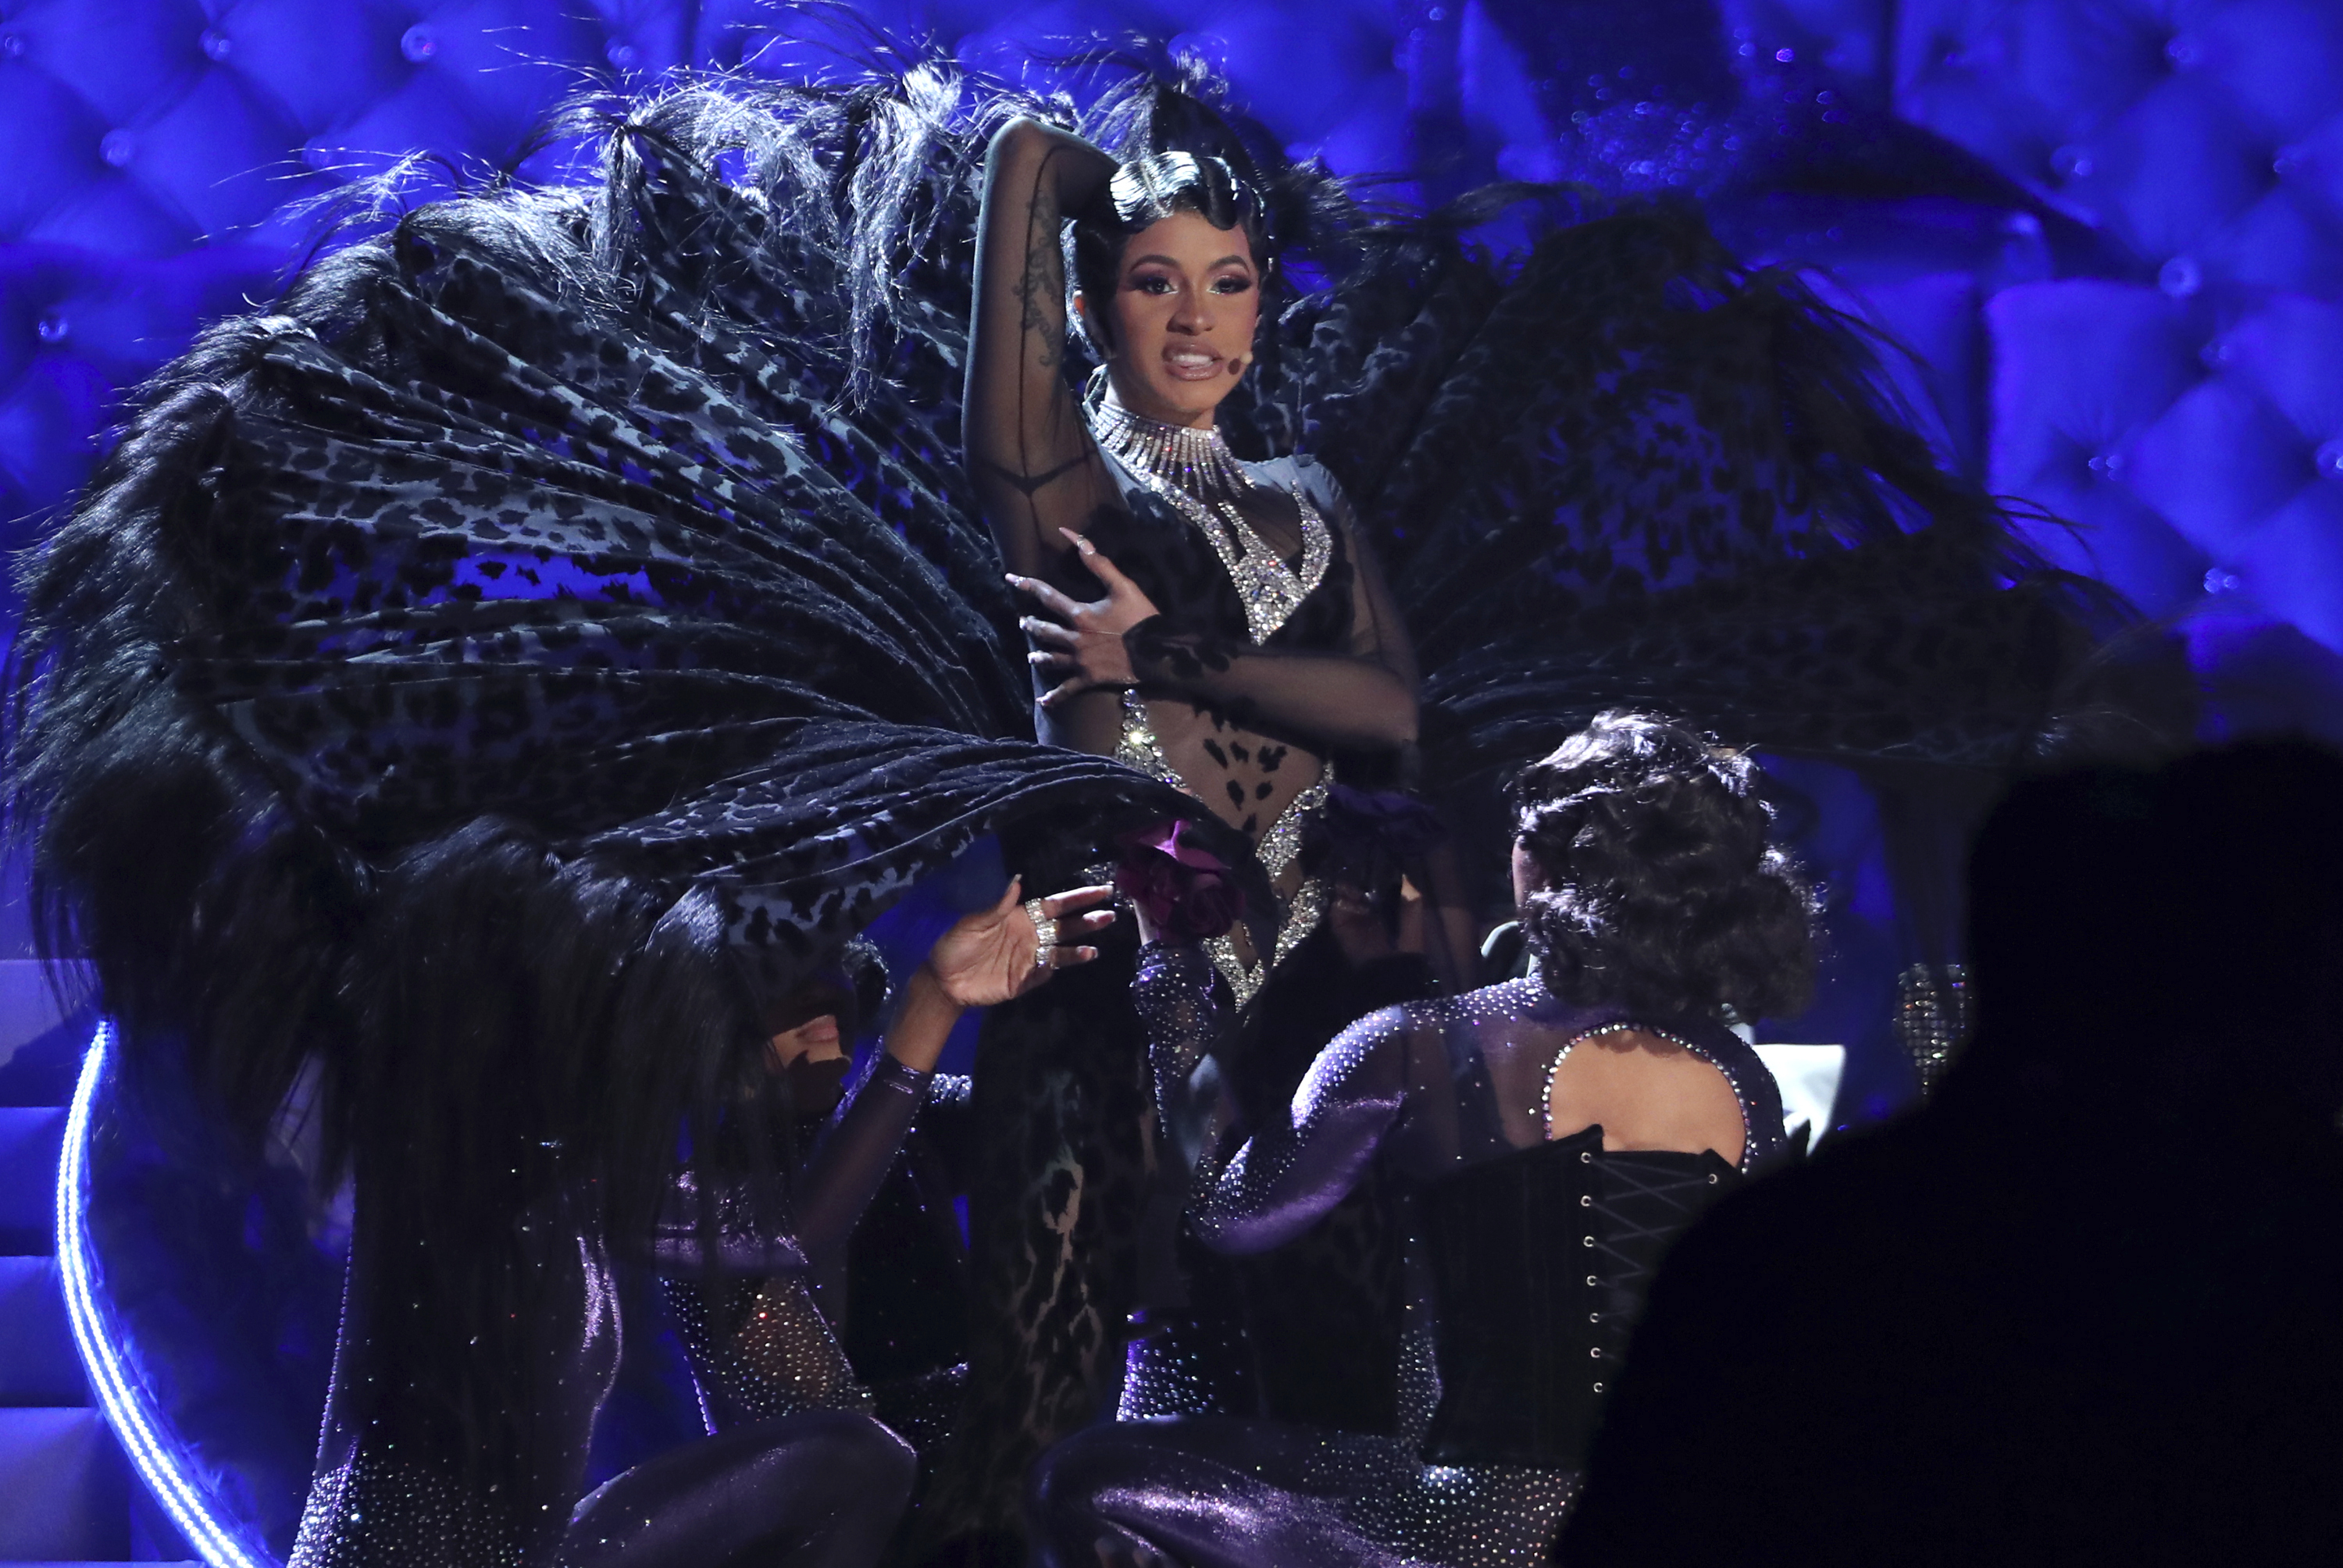 Cardi B performed her hit 'Money' at the 2019 Grammys. Credit: PA